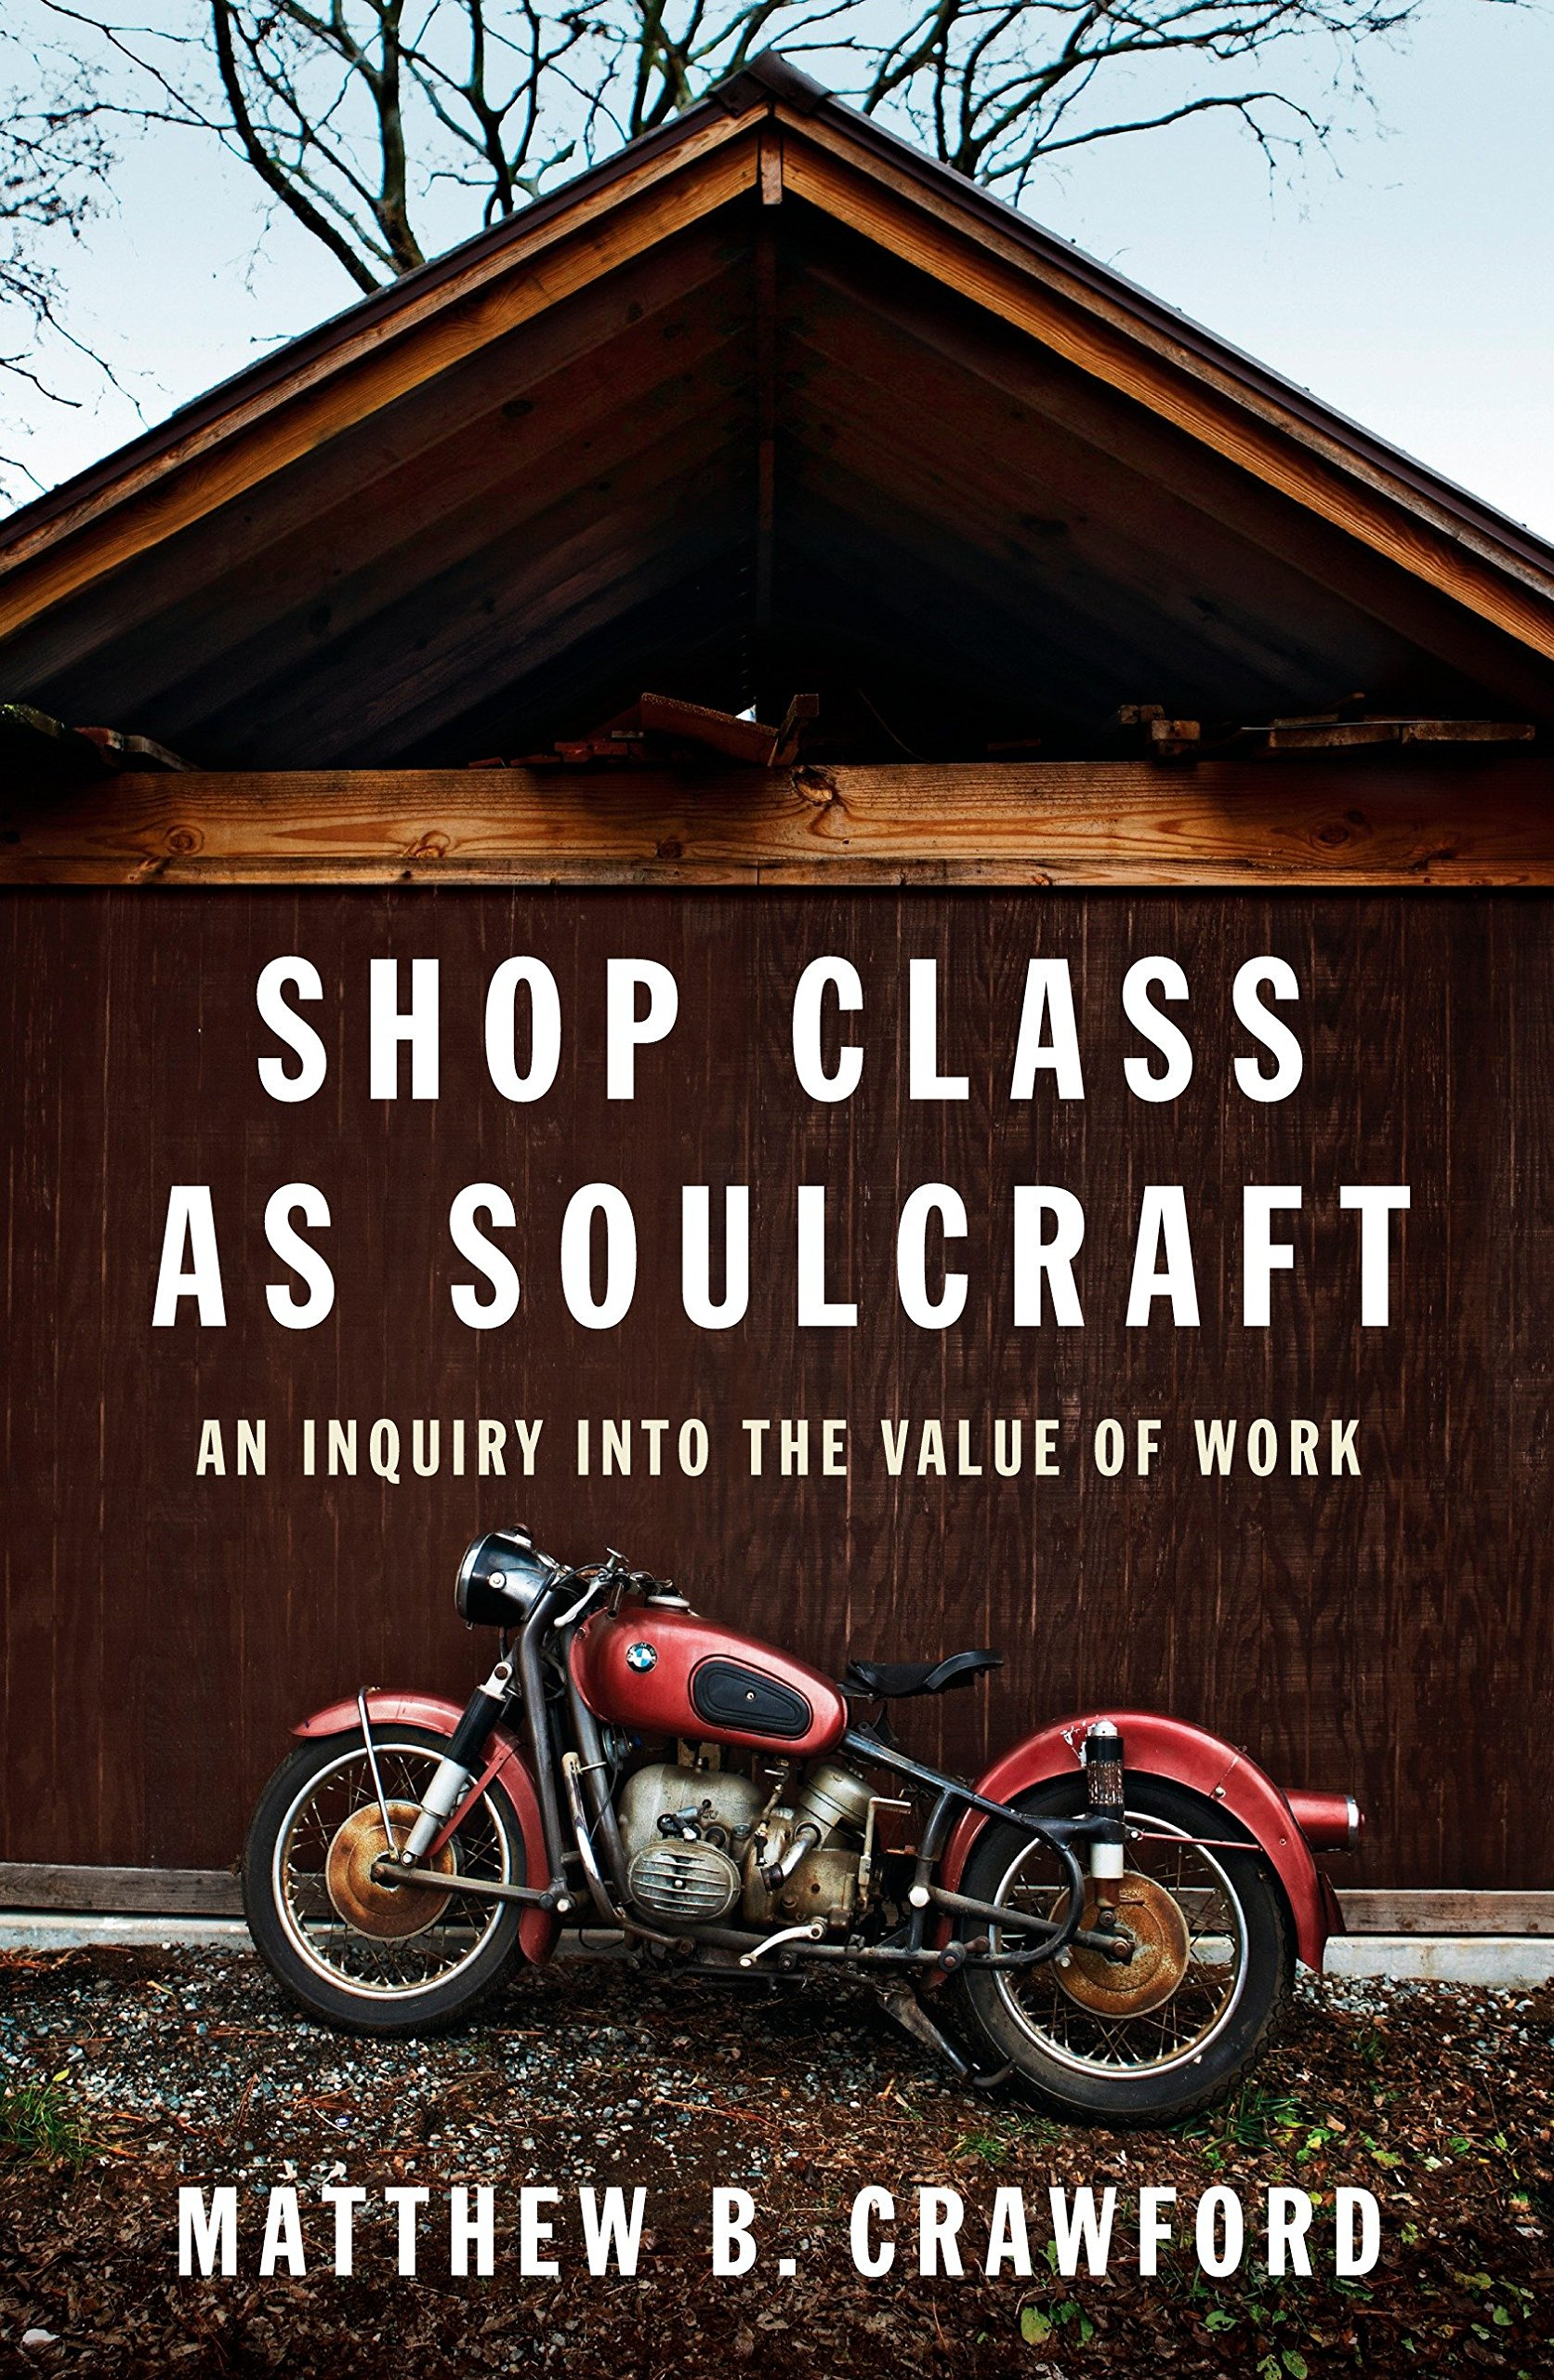 Shop Class as Soulcraft: An Inquiry into the Value of Work book cover